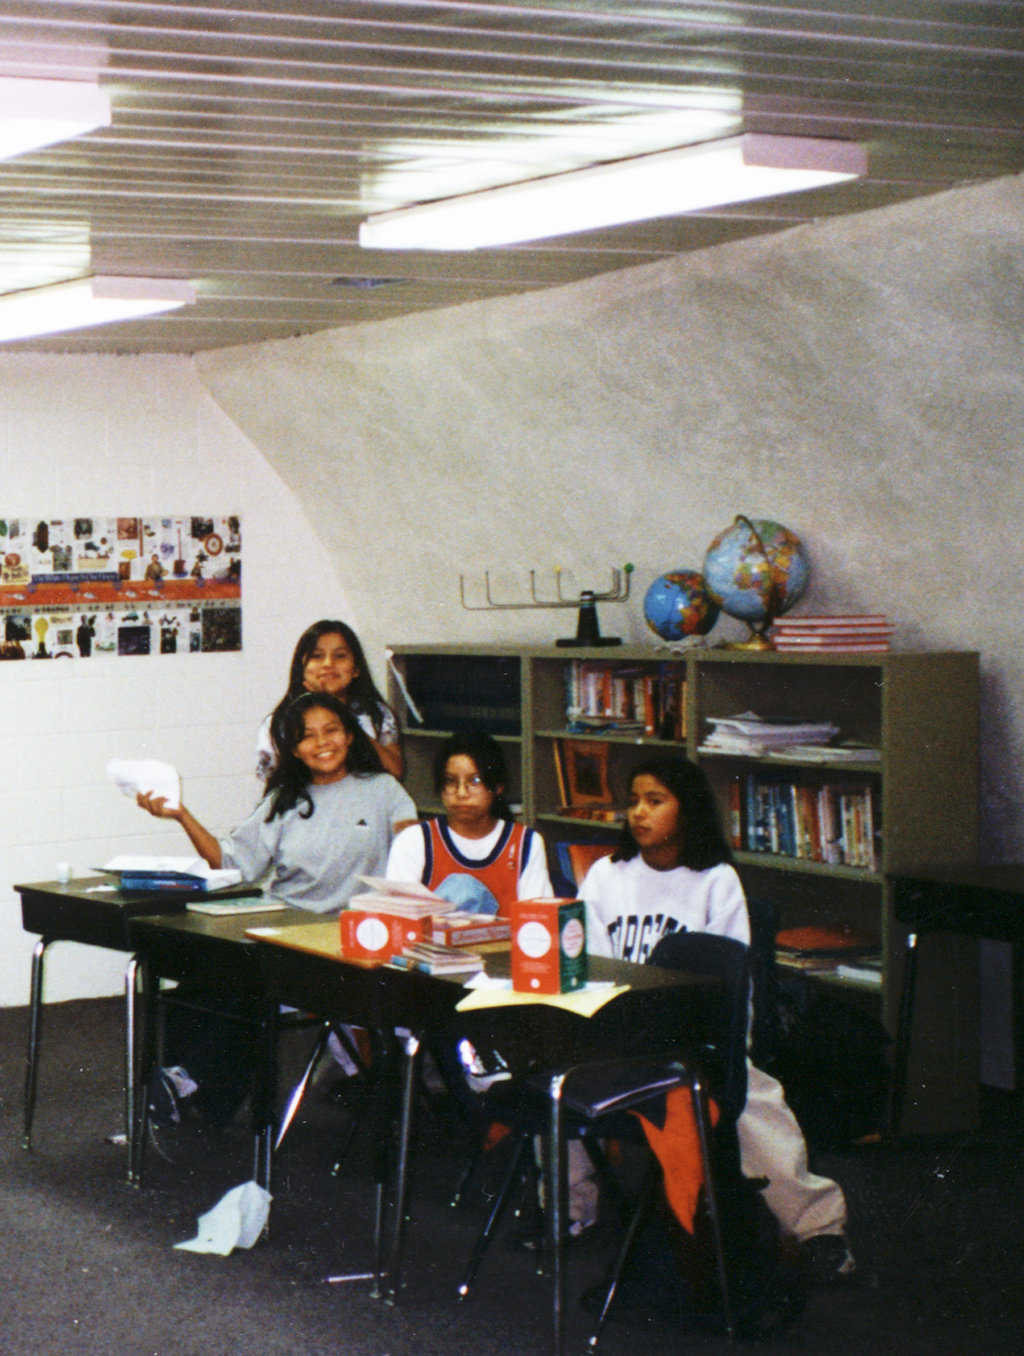 Students enjoy Multipurpose Building — Students and faculty use the Multipurpose Building for a variety of purposes.